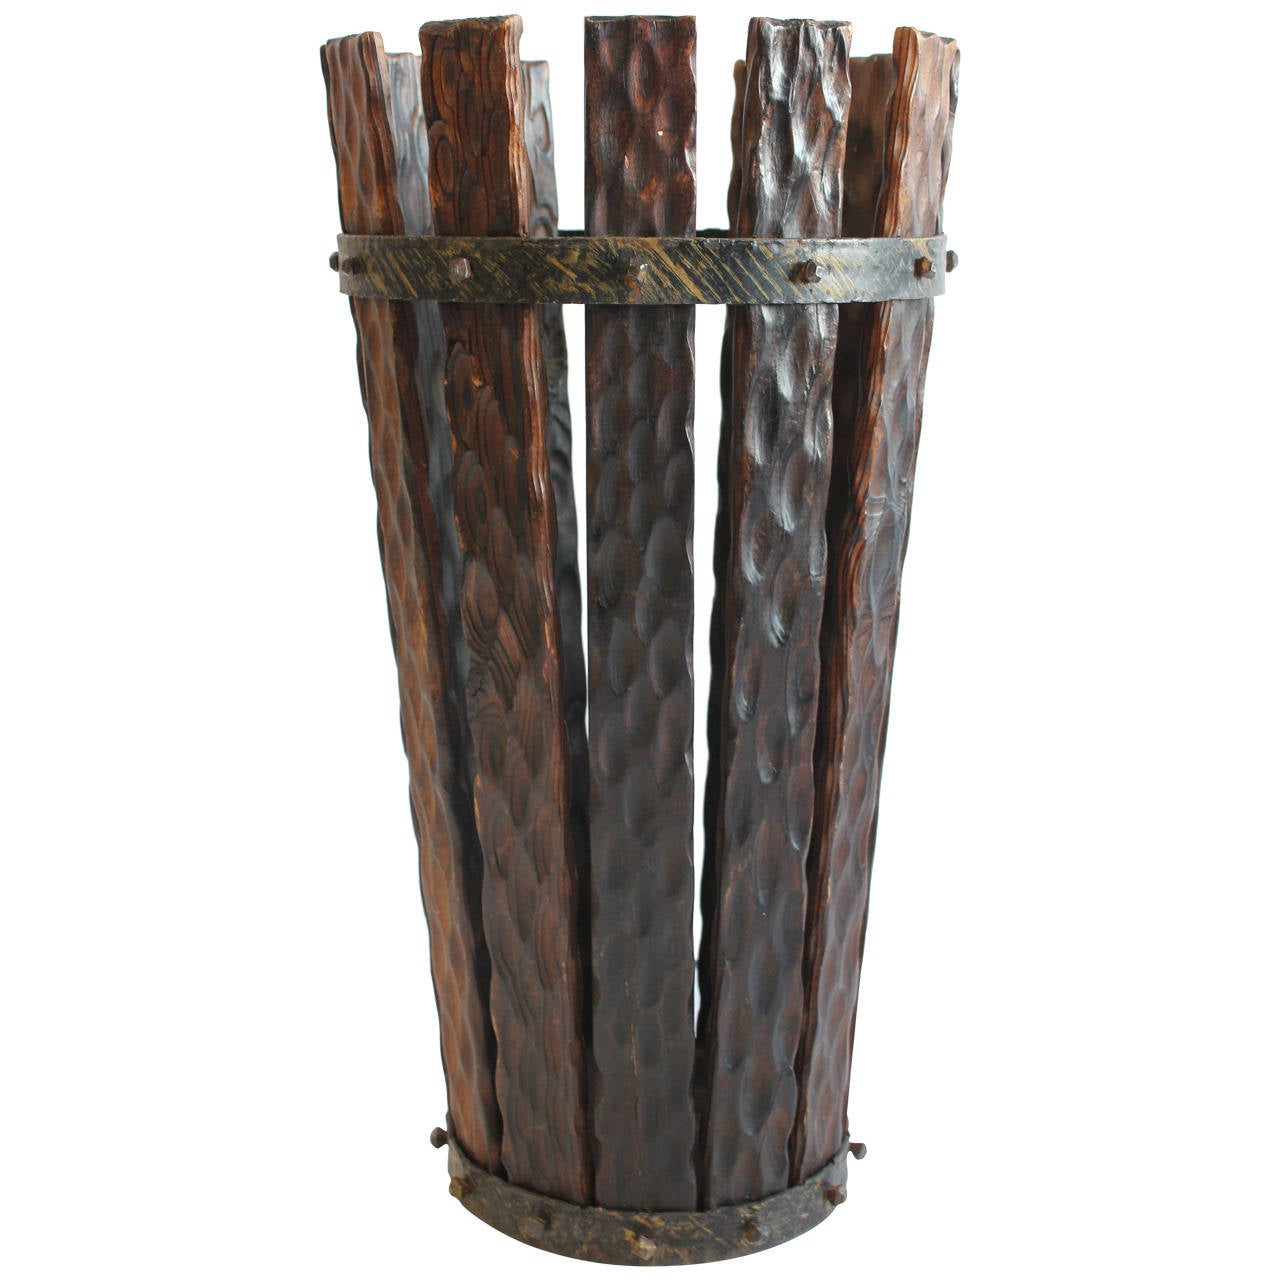 Tall s wood and iron umbrella stand at stdibs